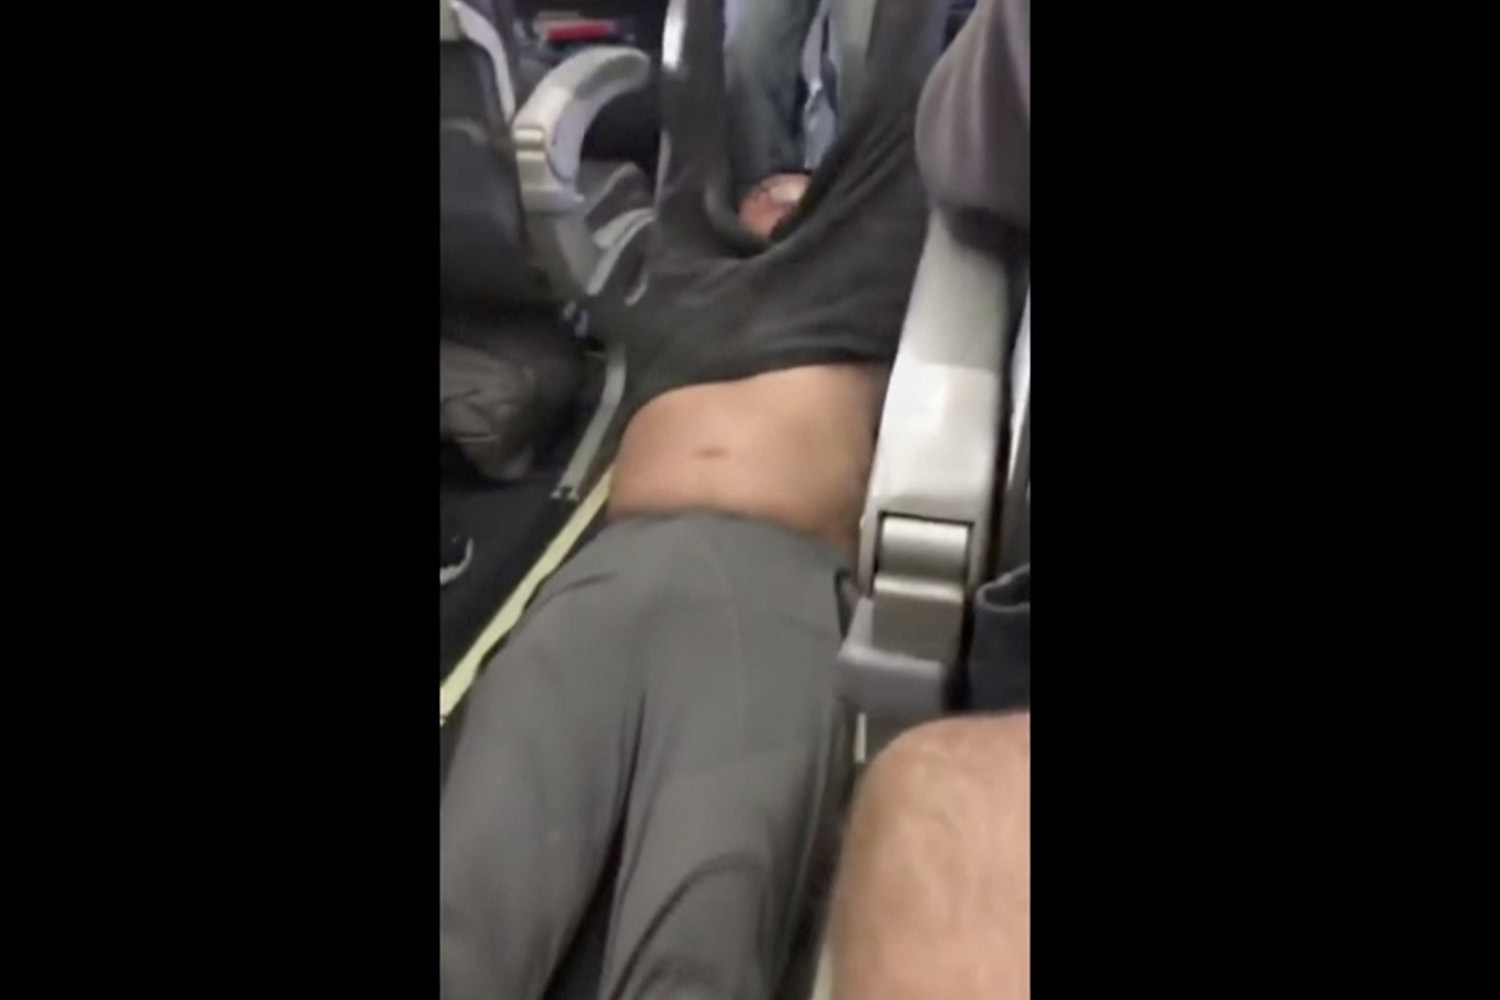 This Sunday, April 9, 2017, image made from a video provided by Audra D. Bridges shows a passenger being removed from a United Airlines flight in Chicago. (Audra D. Bridges via AP)